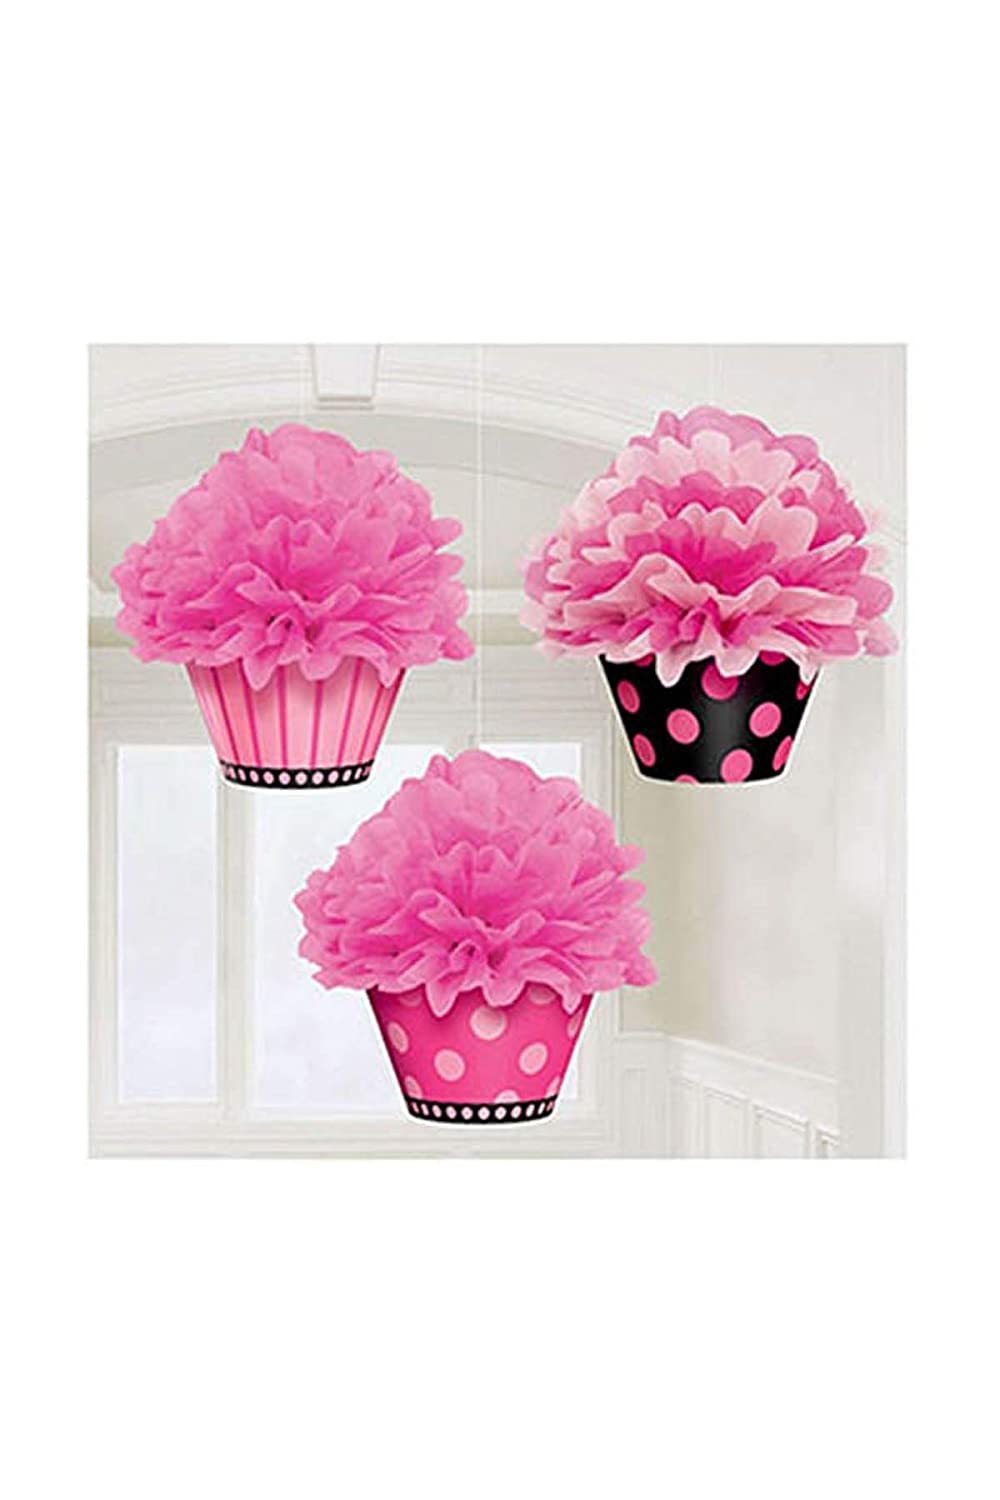 Another Year of Fabulous Collection 180007 Cupcake Fluffy Decorations Party Accessory TradeMart Inc